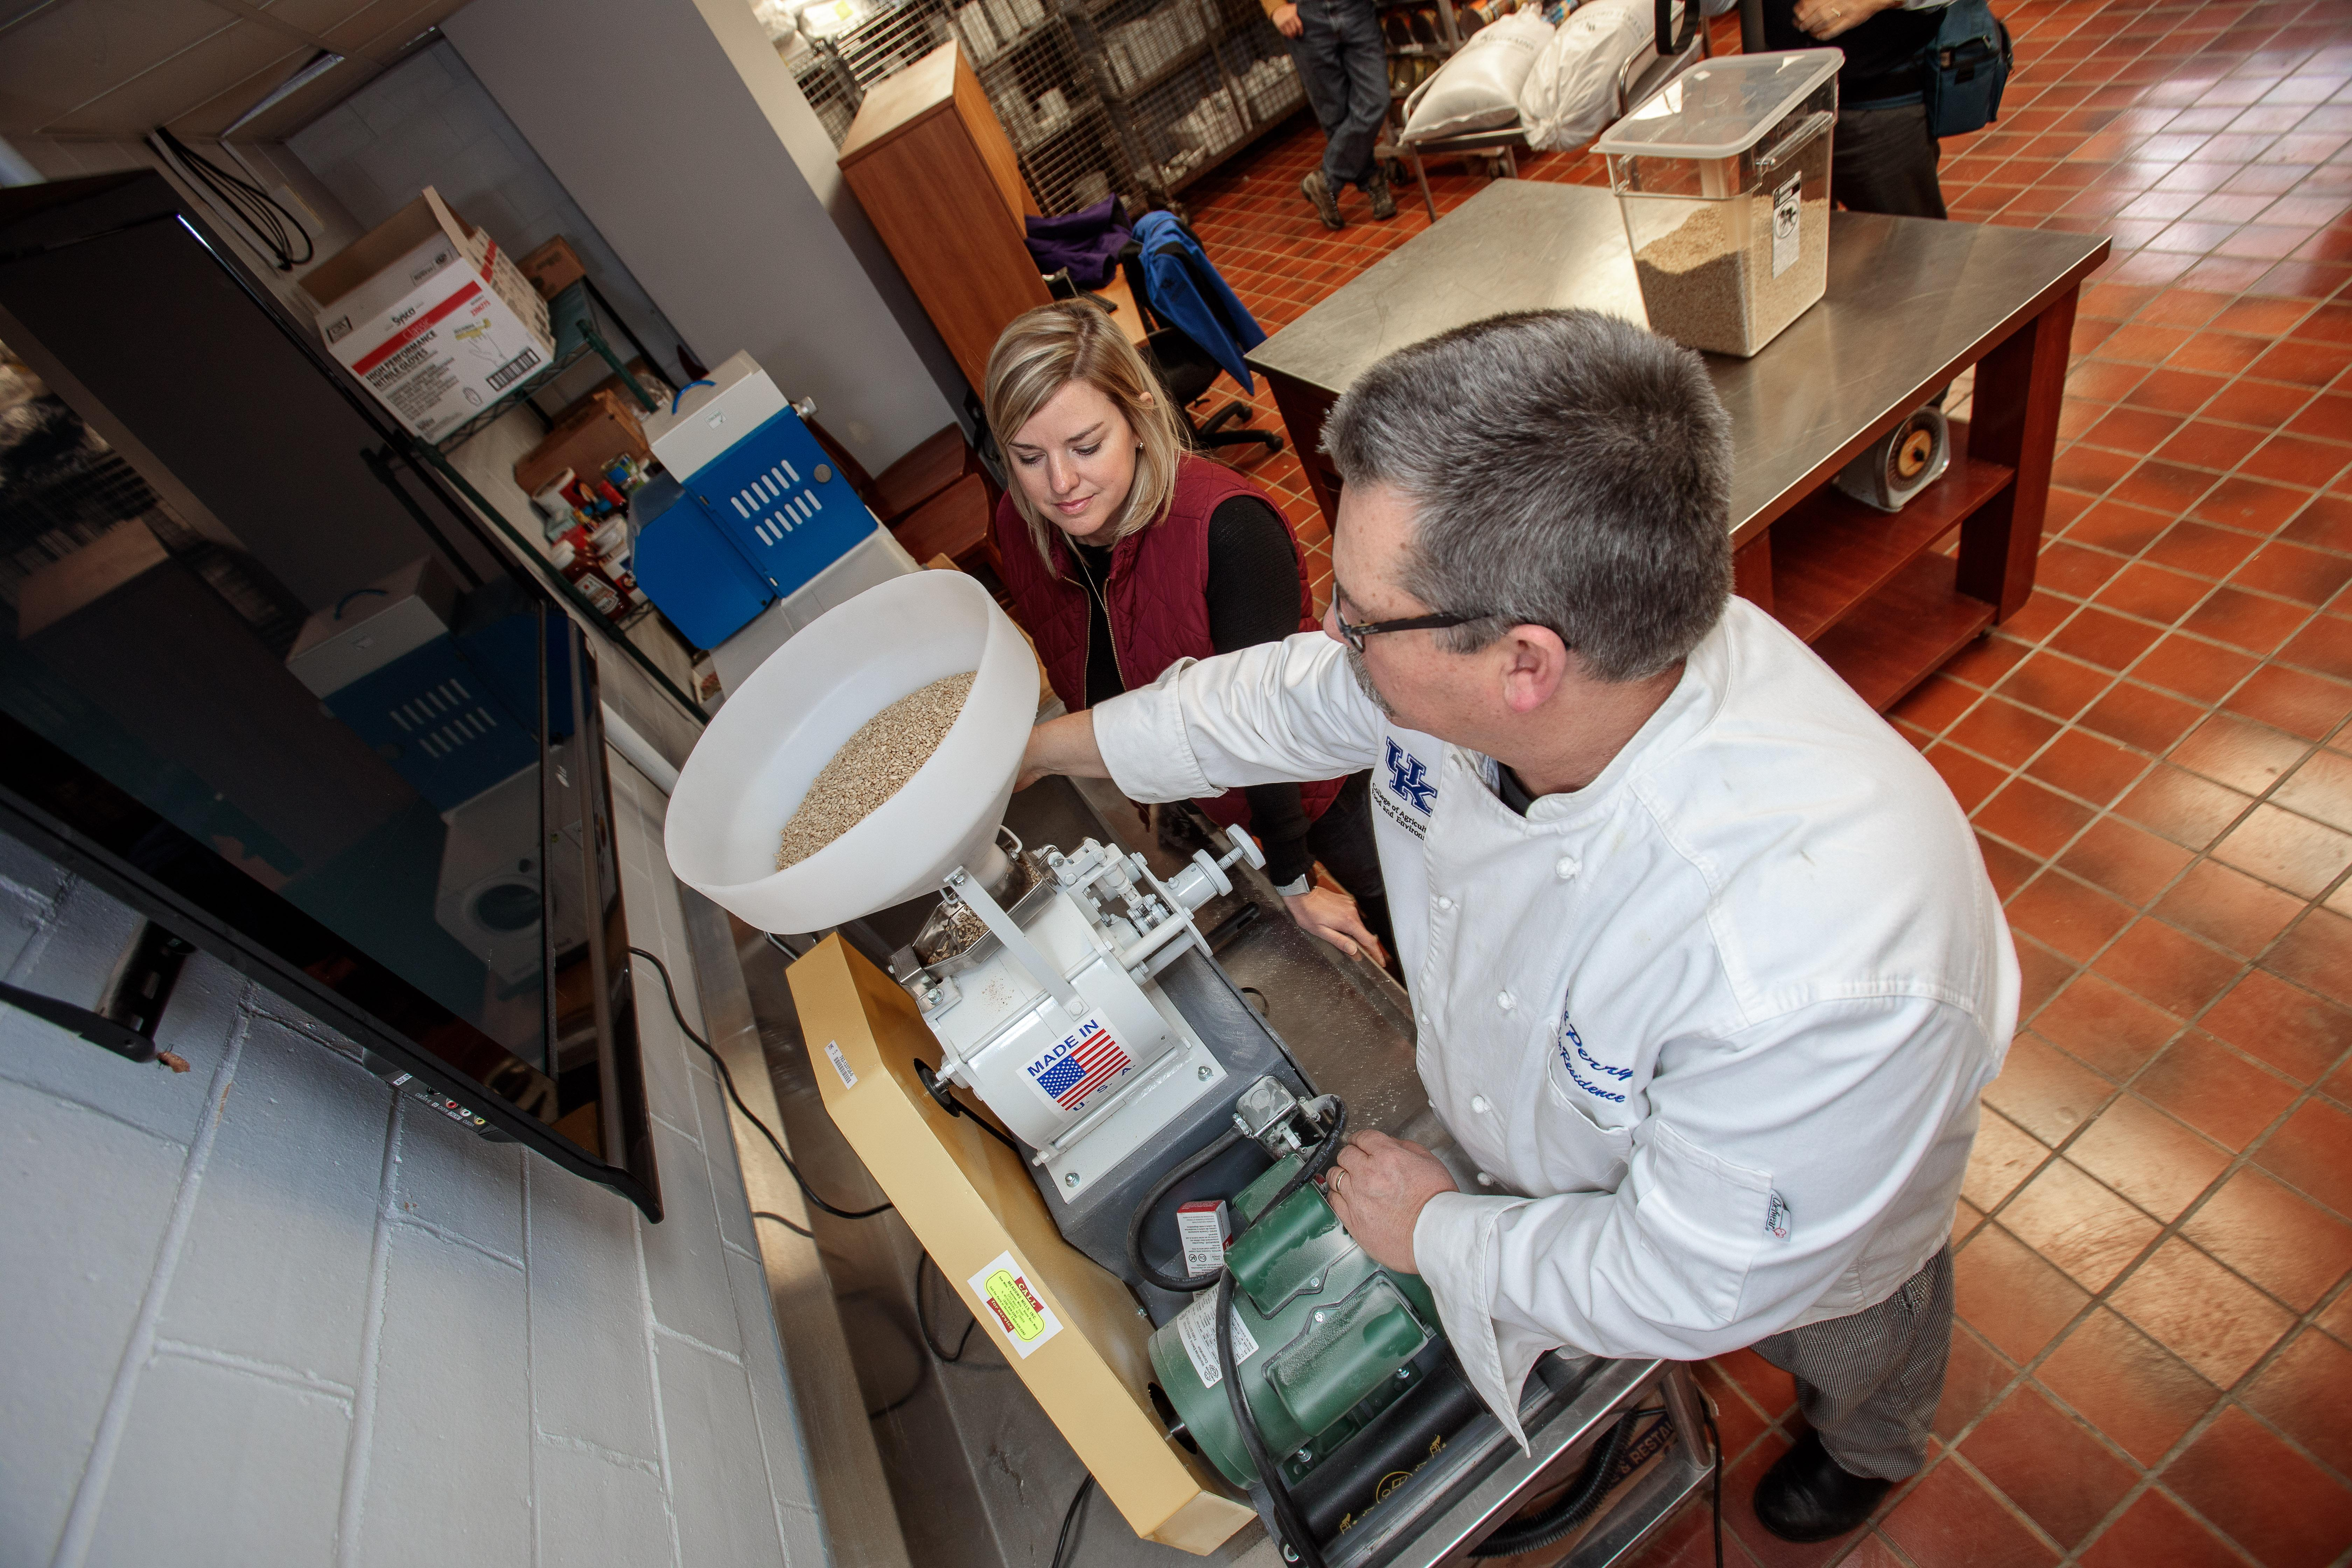 Sarah Halcomb watches as UK chef Bob Perry grinds some of her family's Edison wheat for use in the Lemon Tree, UK's student-run restaurant. Photo by Matt Barton, UK Agricultural Communications.